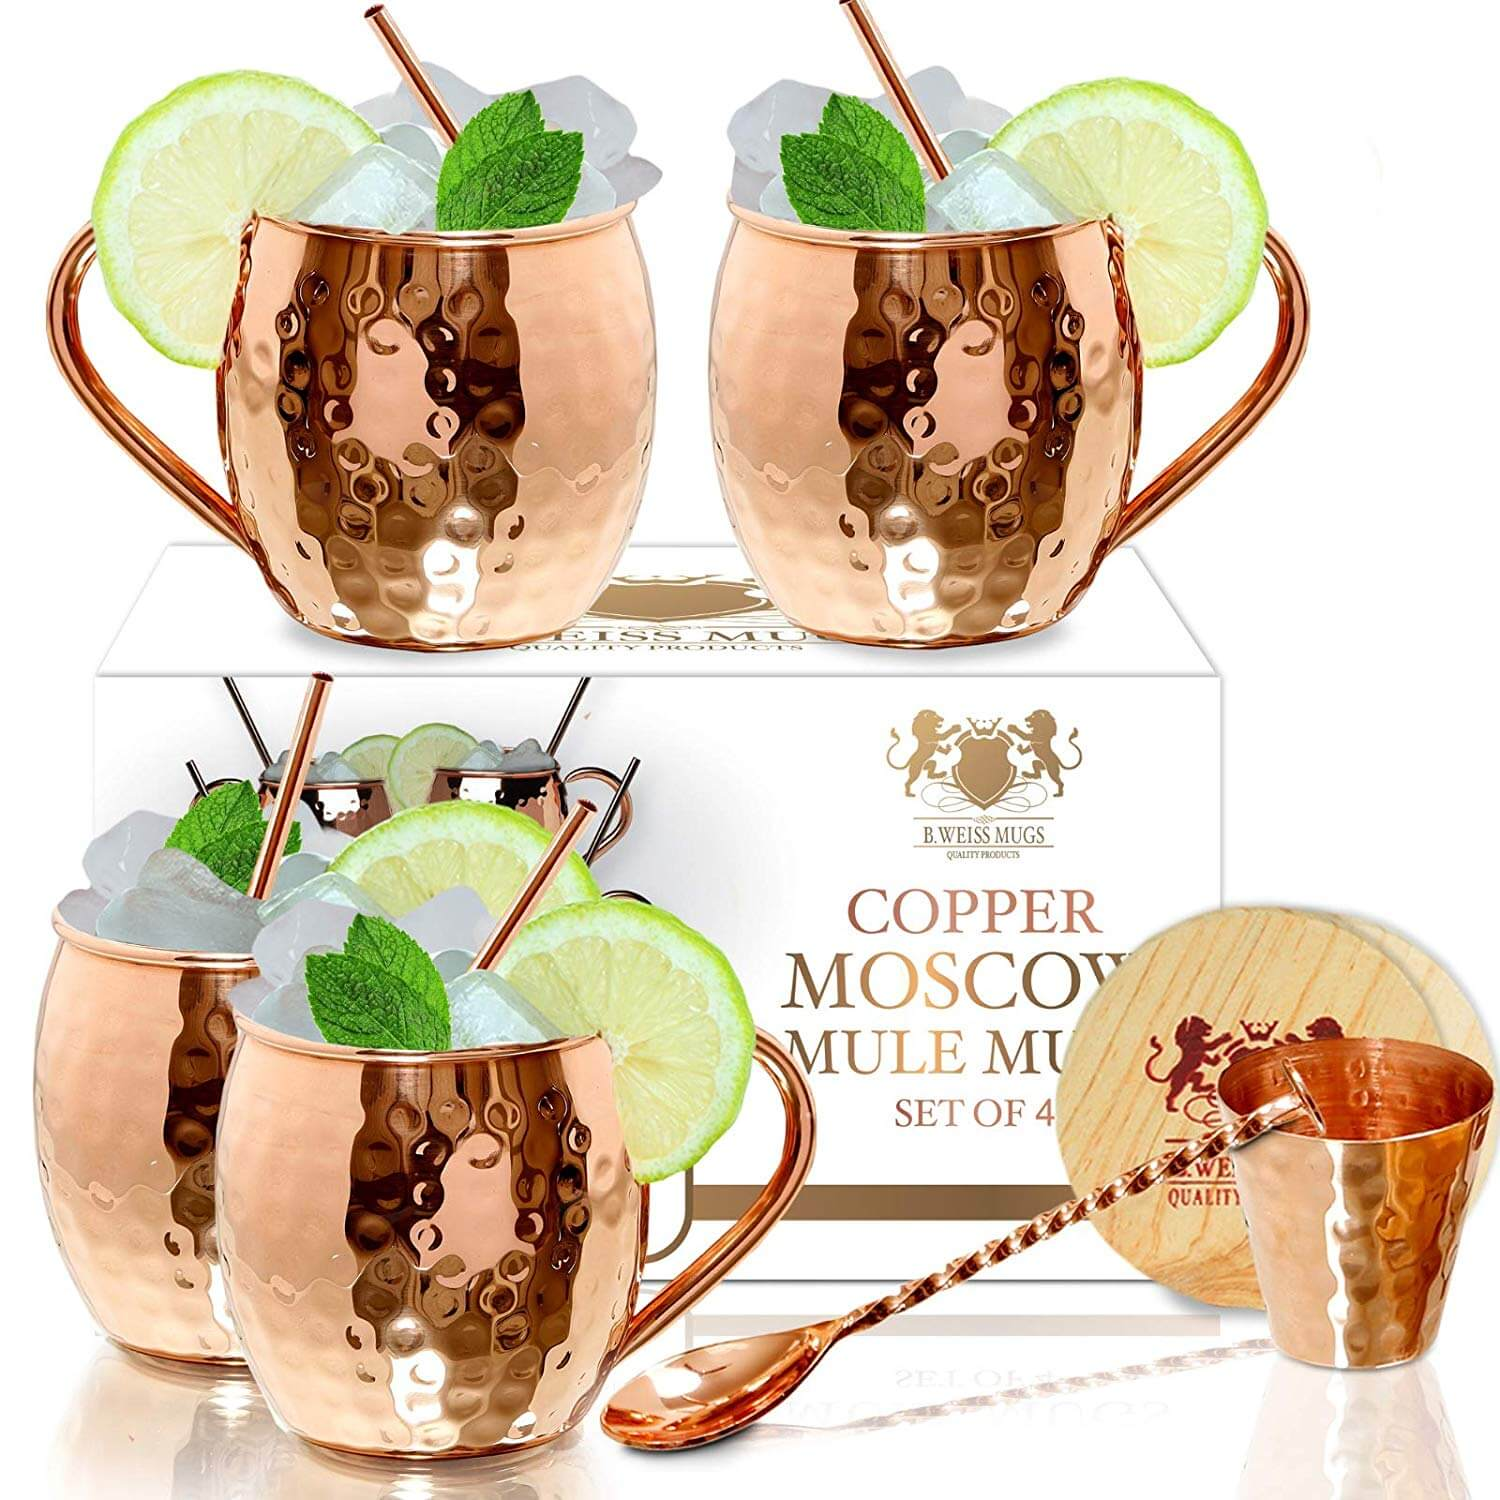 B. WEISS MUGS Moscow Mule Copper Mugs